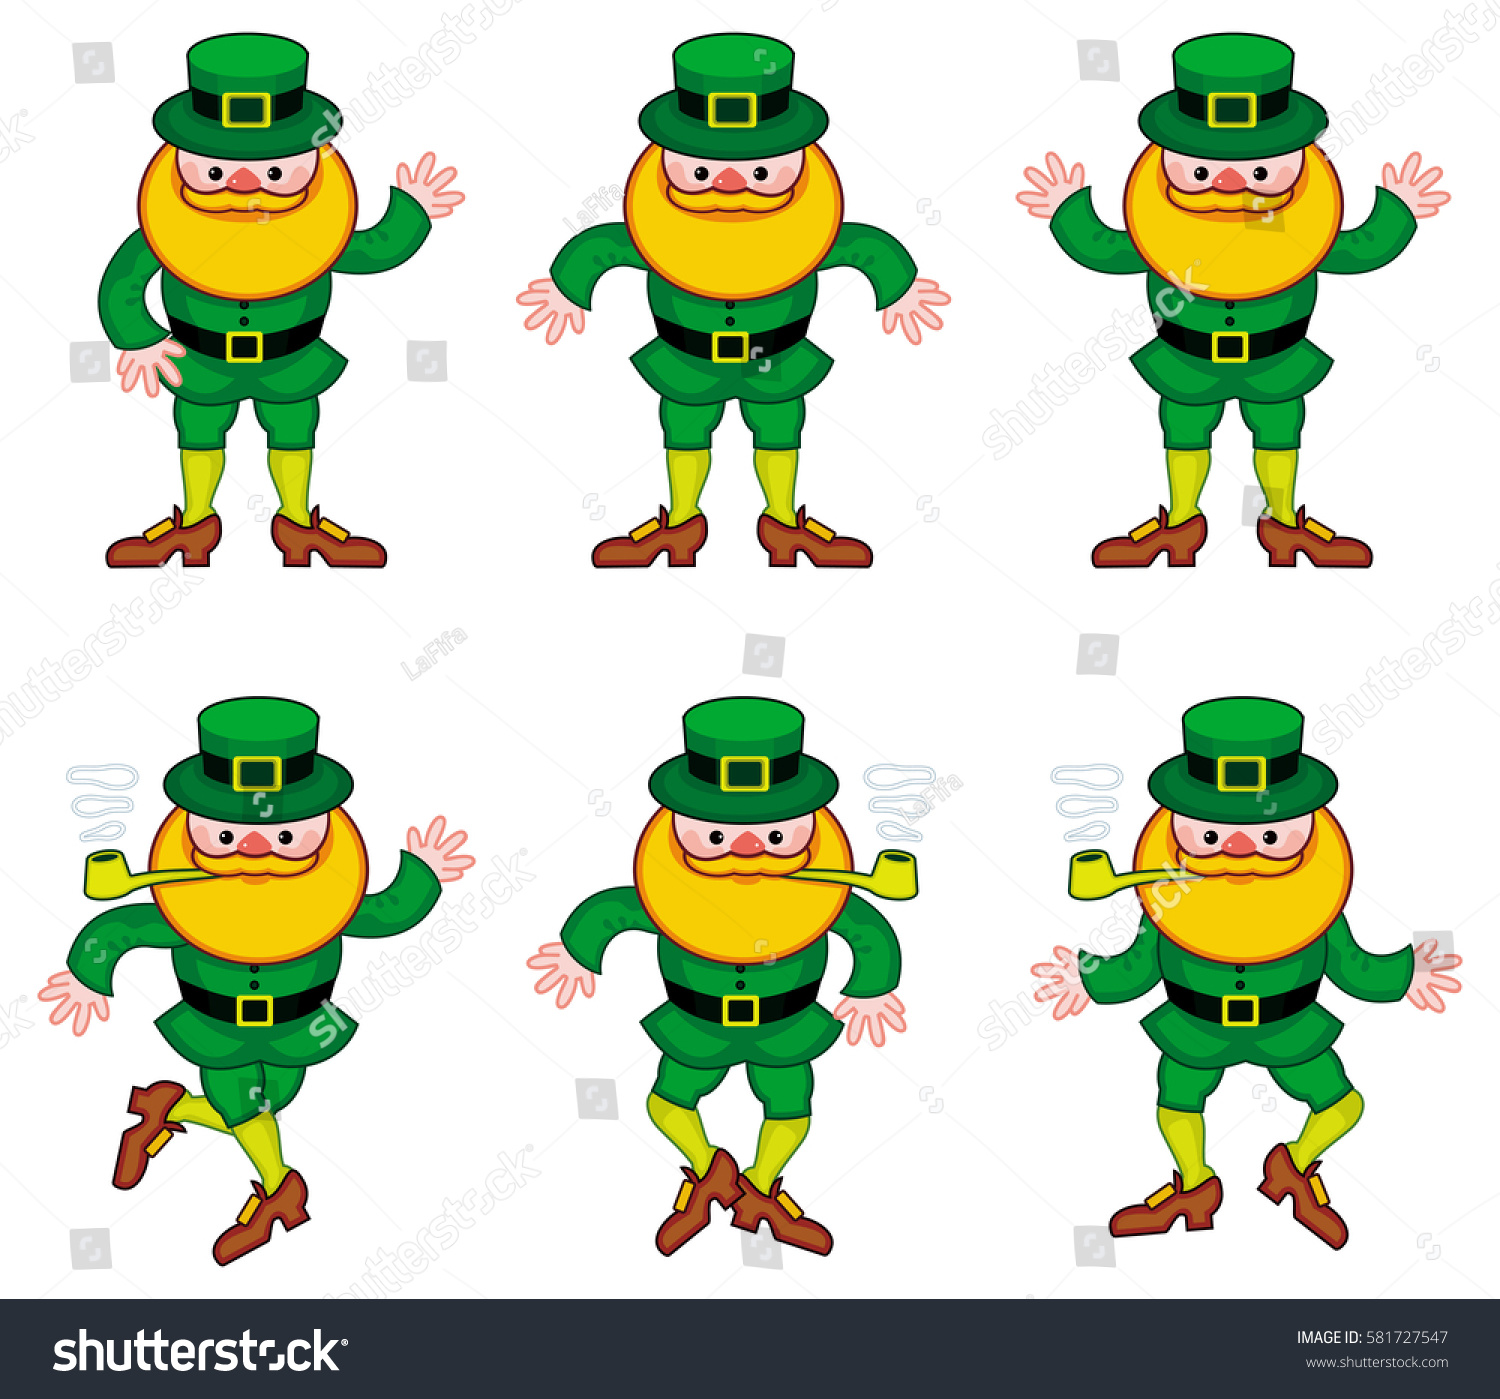 Uncategorized Dancing Leprechauns dancing leprechauns isolated on white raster stock illustration a clip art